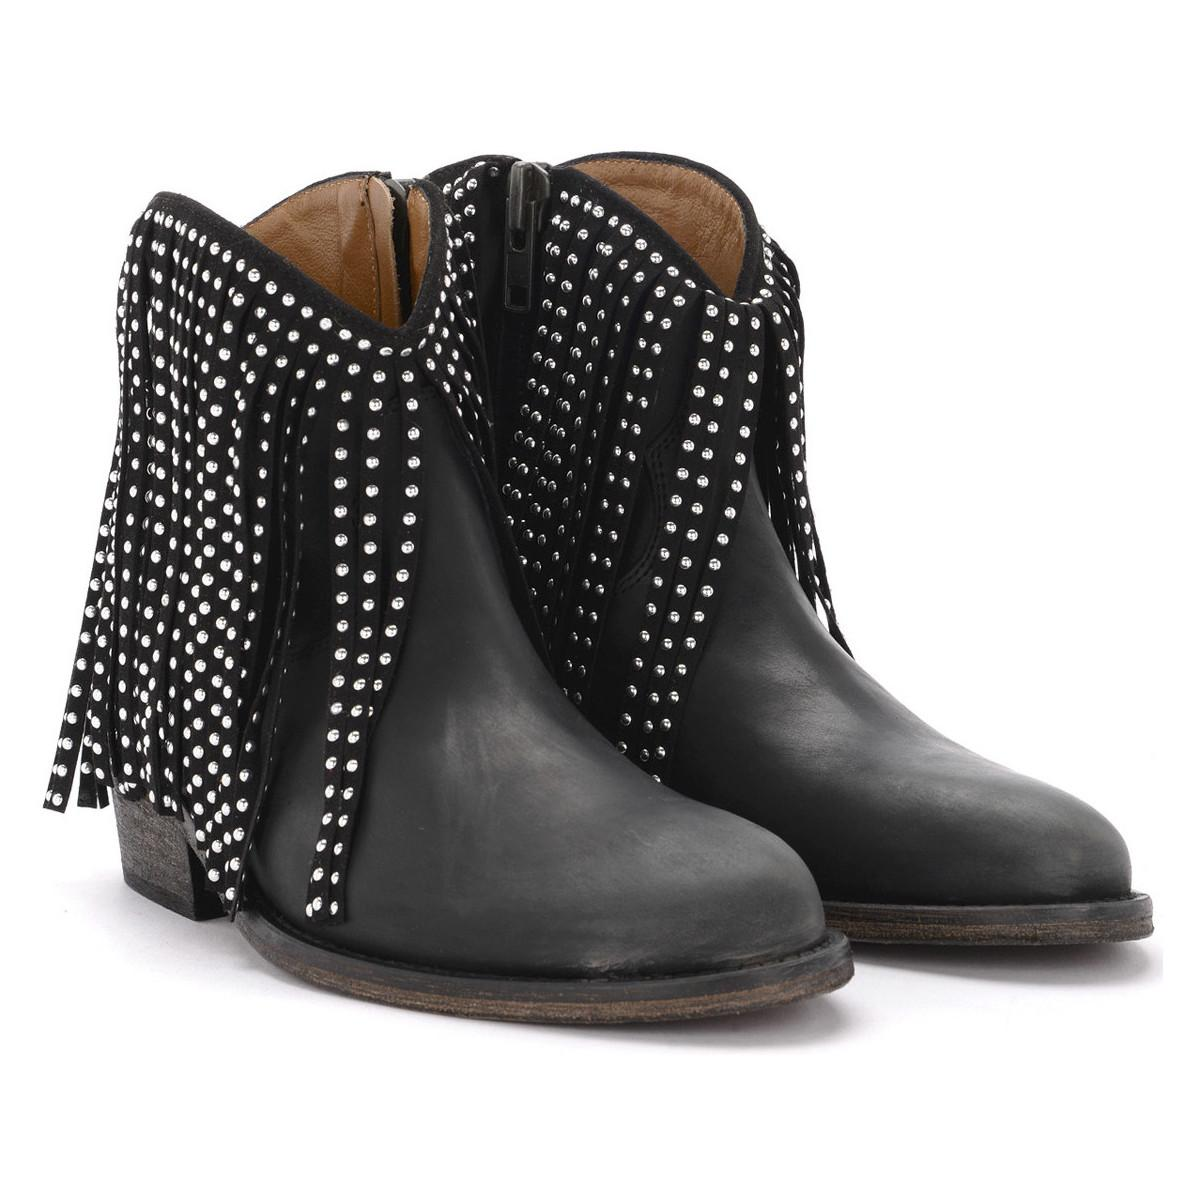 a37b700c72 Via Roma 15 - Texan Black Leather Ankle Boots With Fringes Women's Low Boots  In Black. View fullscreen